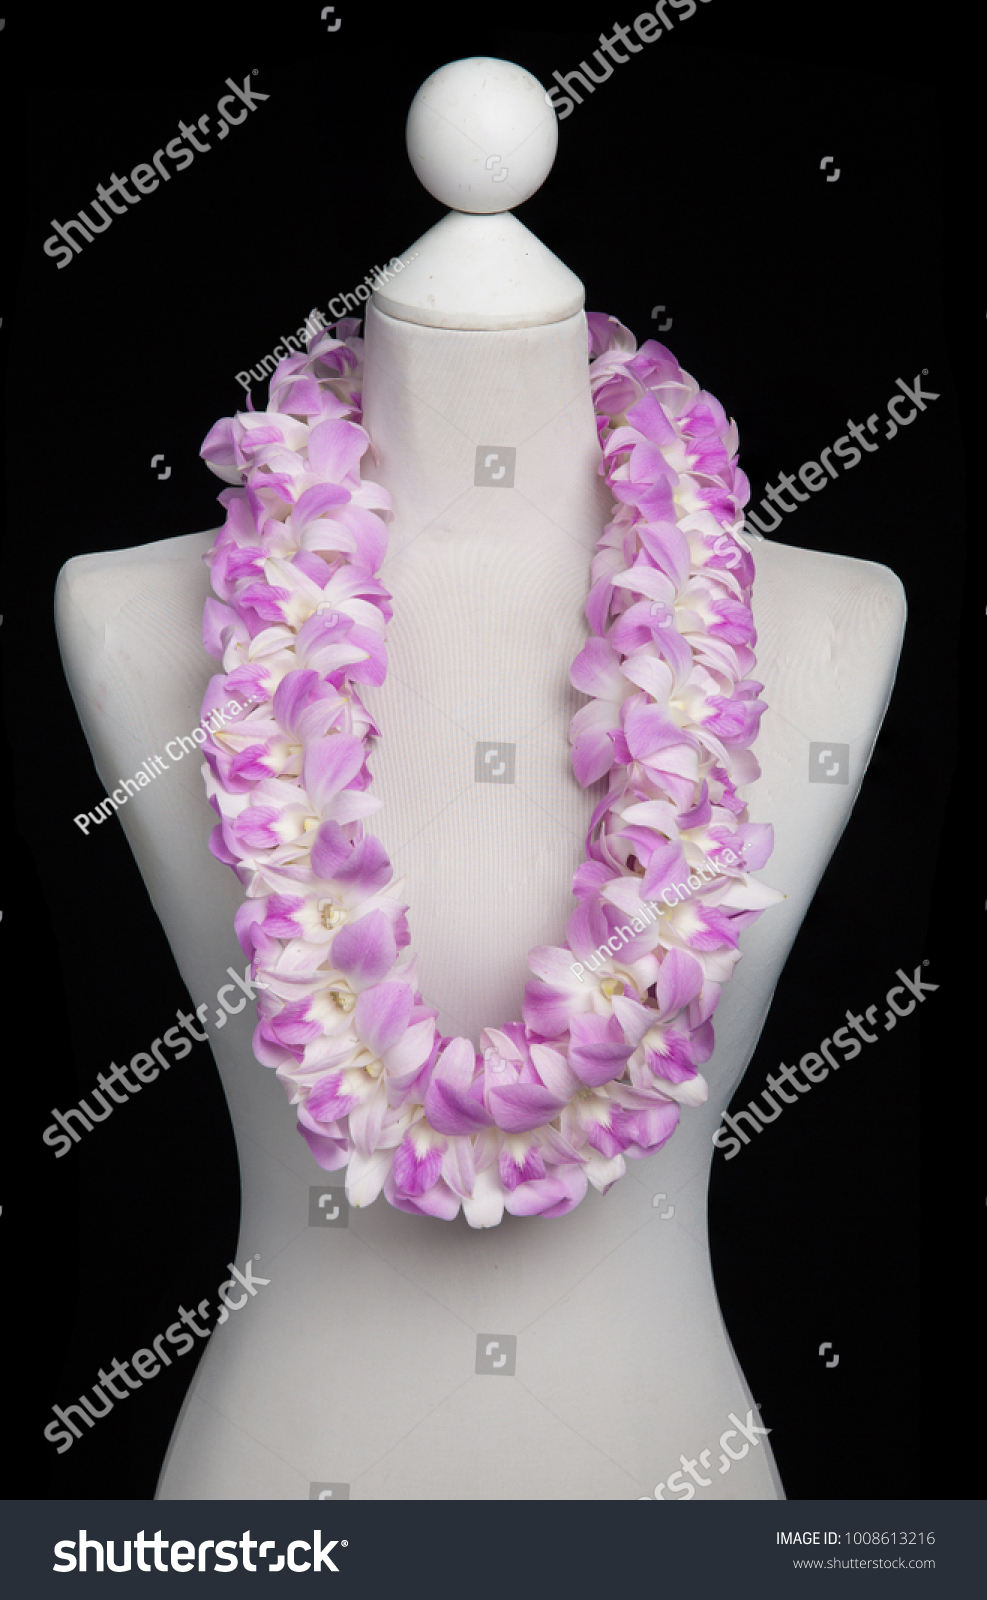 Hawaii flowers lei necklace made orchid stock photo download now hawaii flowers lei necklace made from orchid flower double light pink dendrobium izmirmasajfo